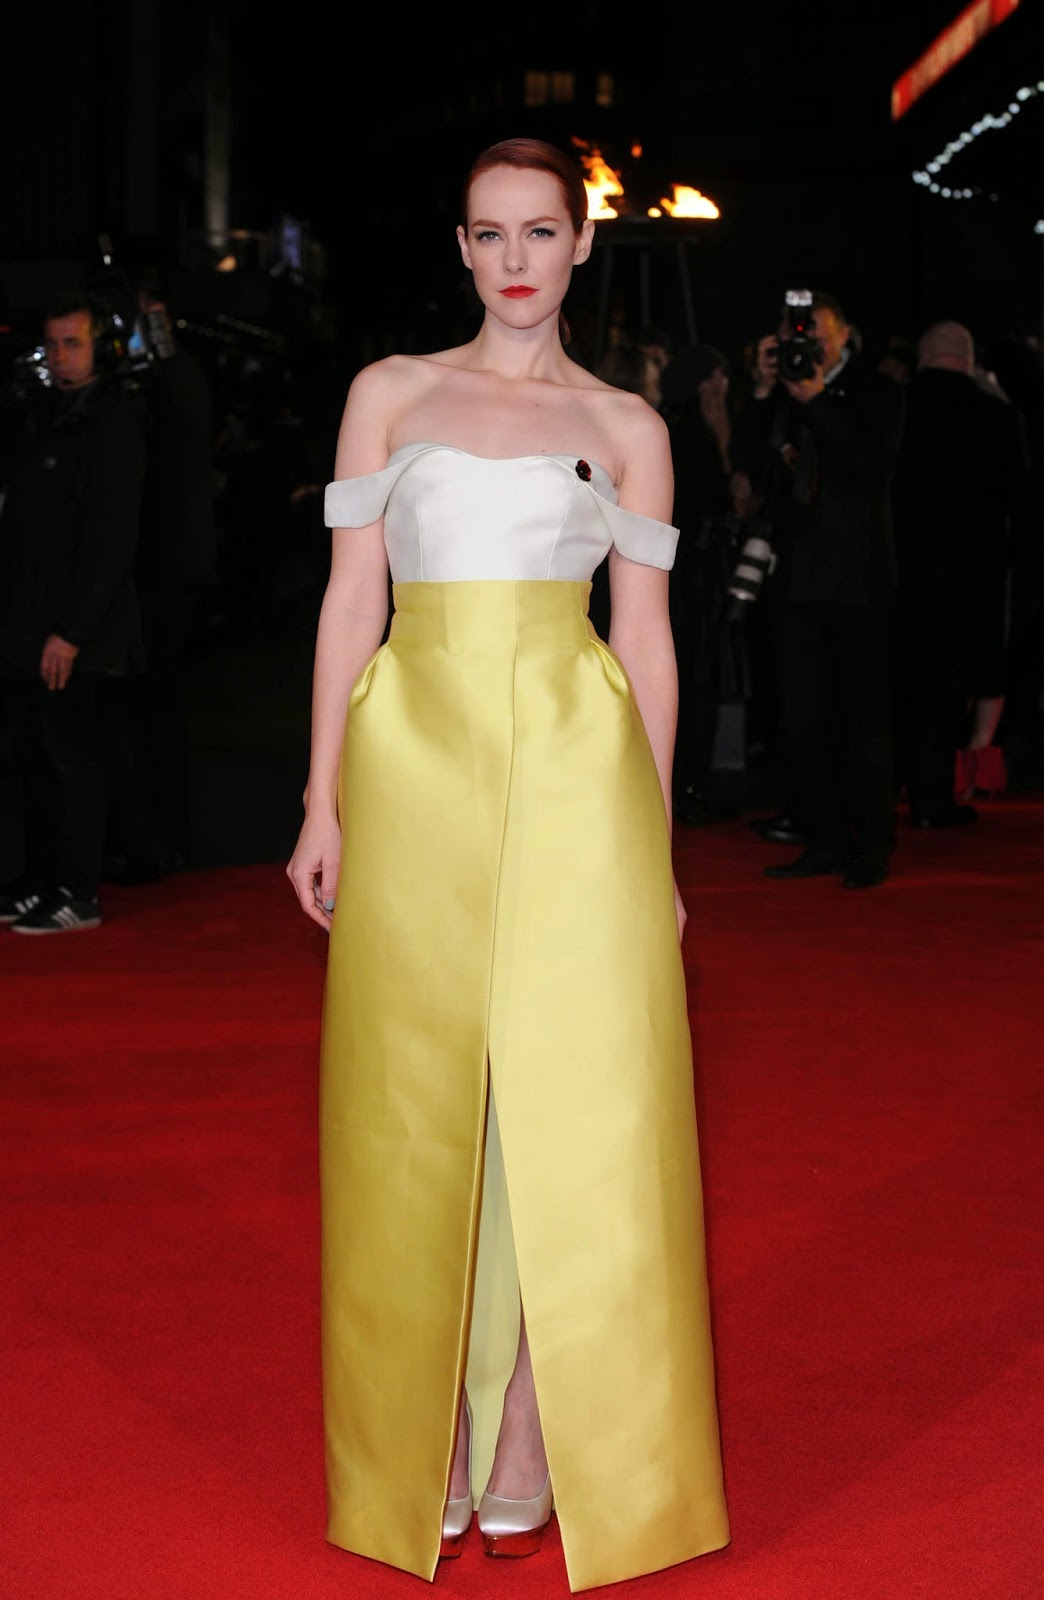 Jena Malone at Premiere of 'The Hunger Games: Mockingjay Part 1′ in London